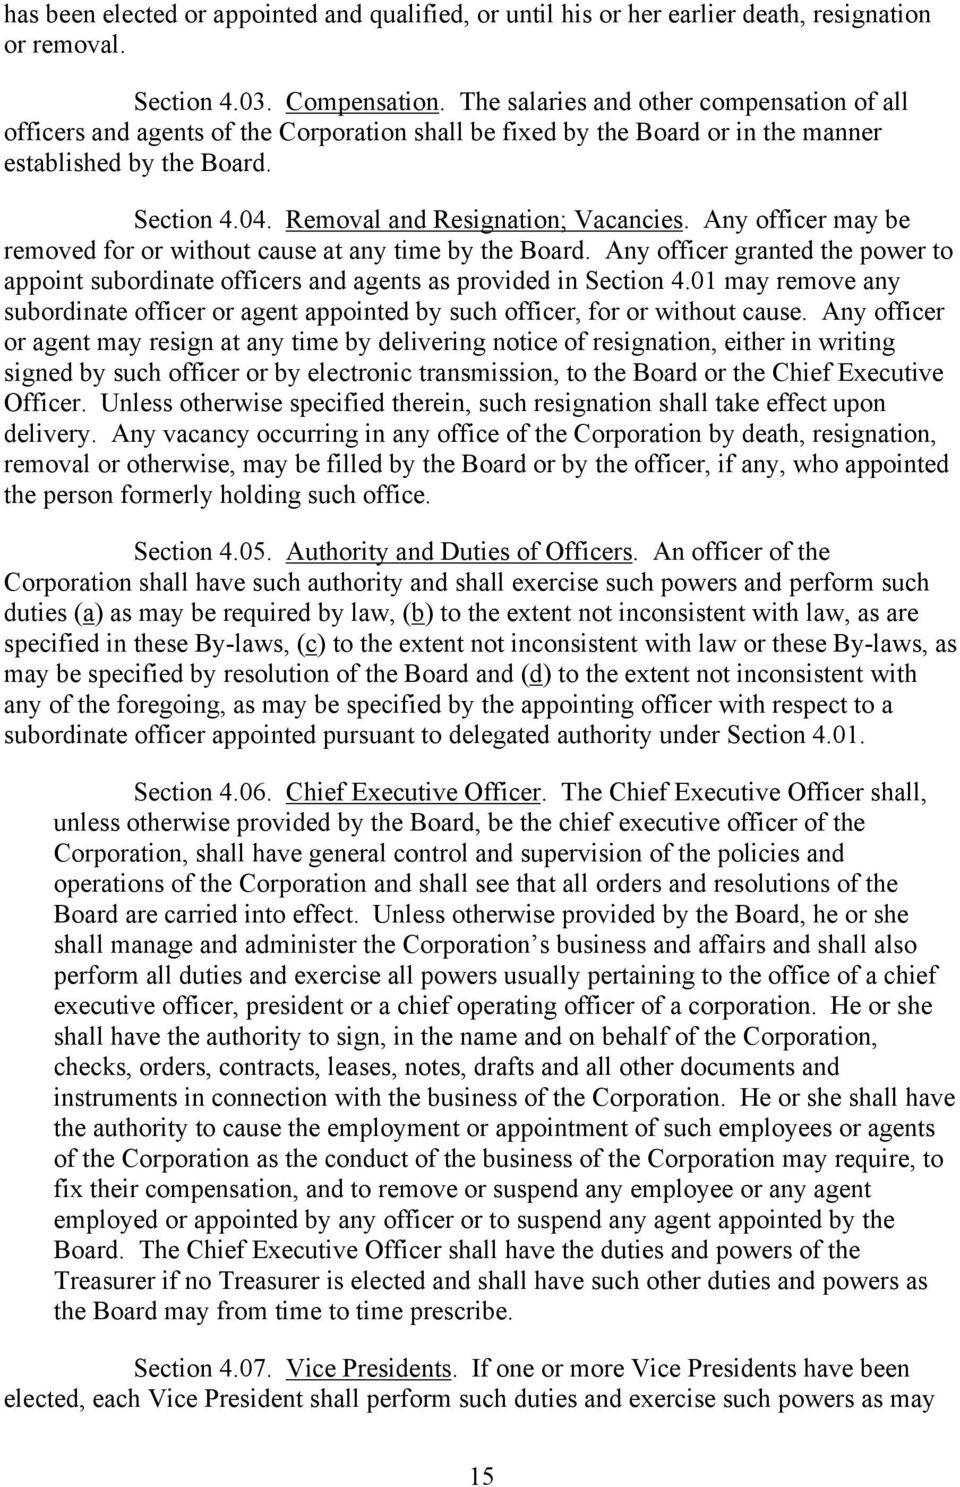 Removal and Resignation; Vacancies. Any officer may be removed for or without cause at any time by the Board.